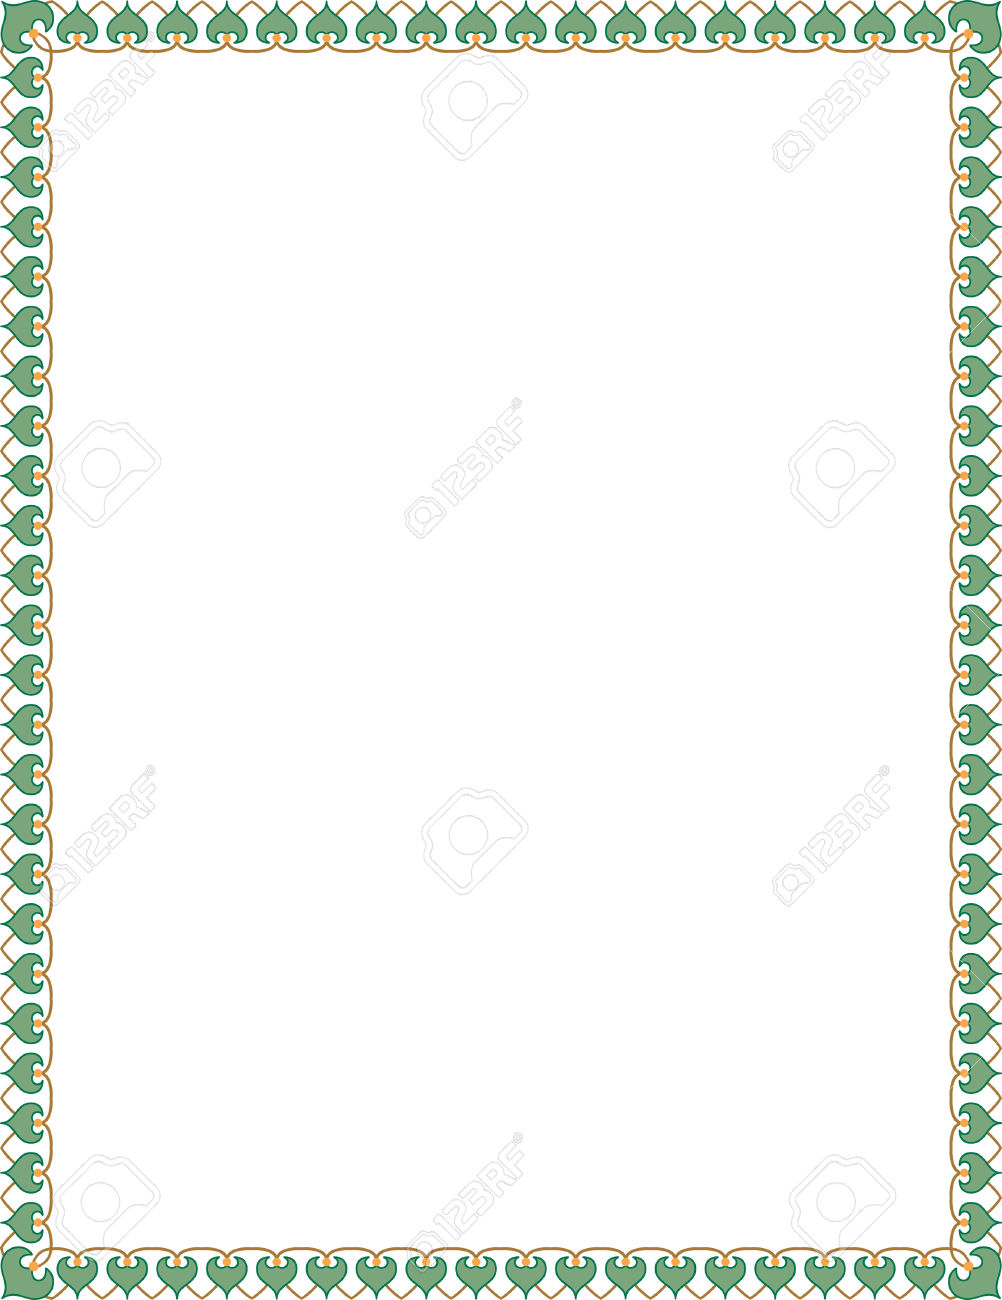 Thin frame clipart clipart royalty free download Simple Tiling Thin Frame, Colored Royalty Free Cliparts, Vectors ... clipart royalty free download